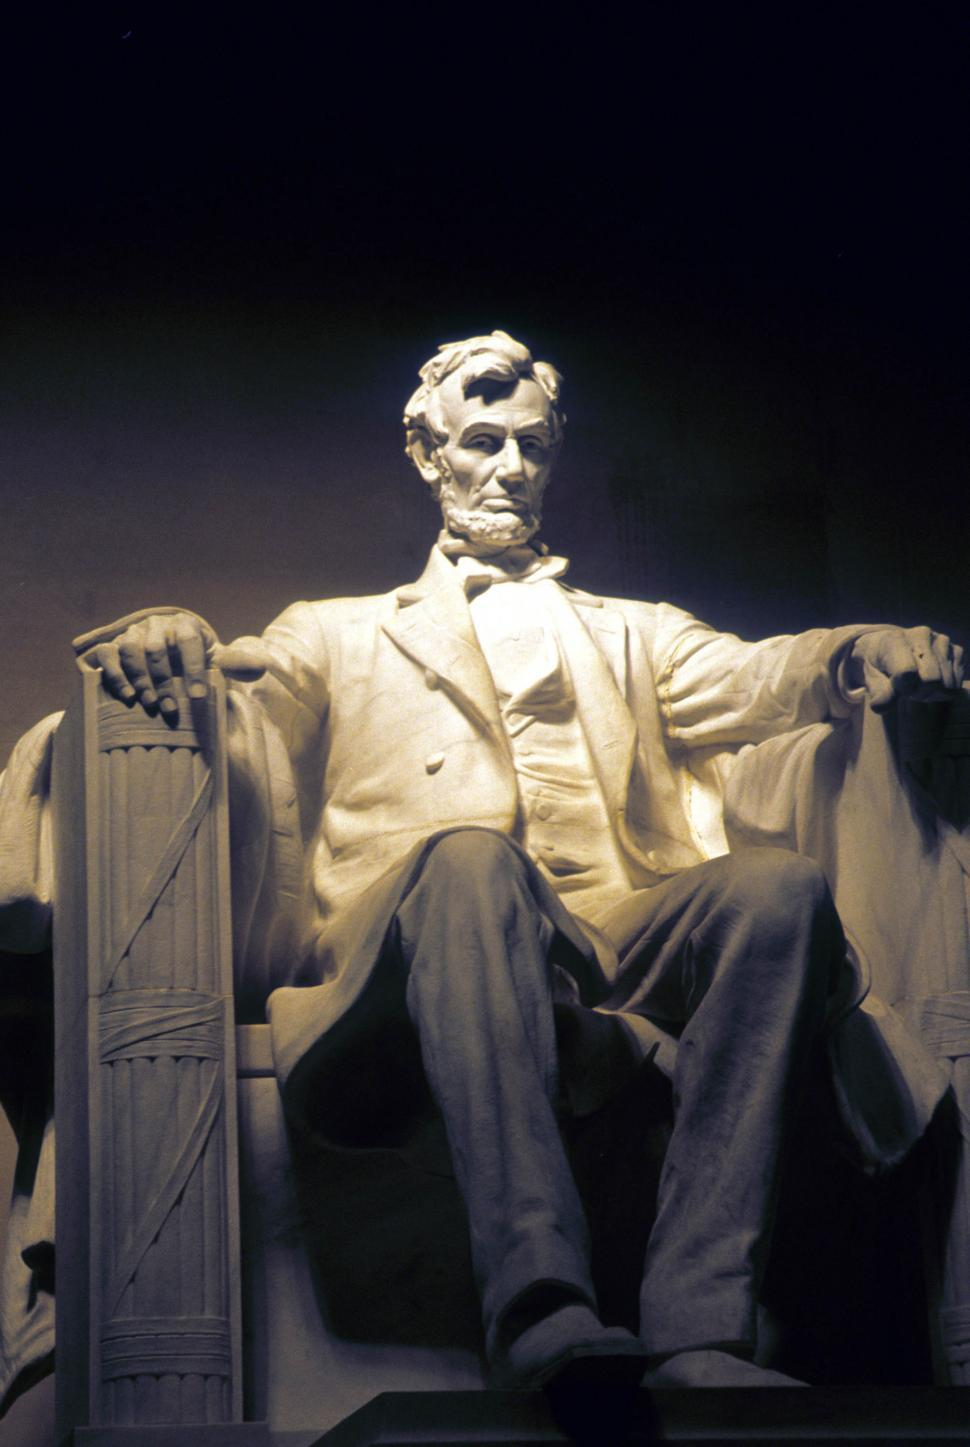 Download Free Stock Photo of Abraham Lincoln statue